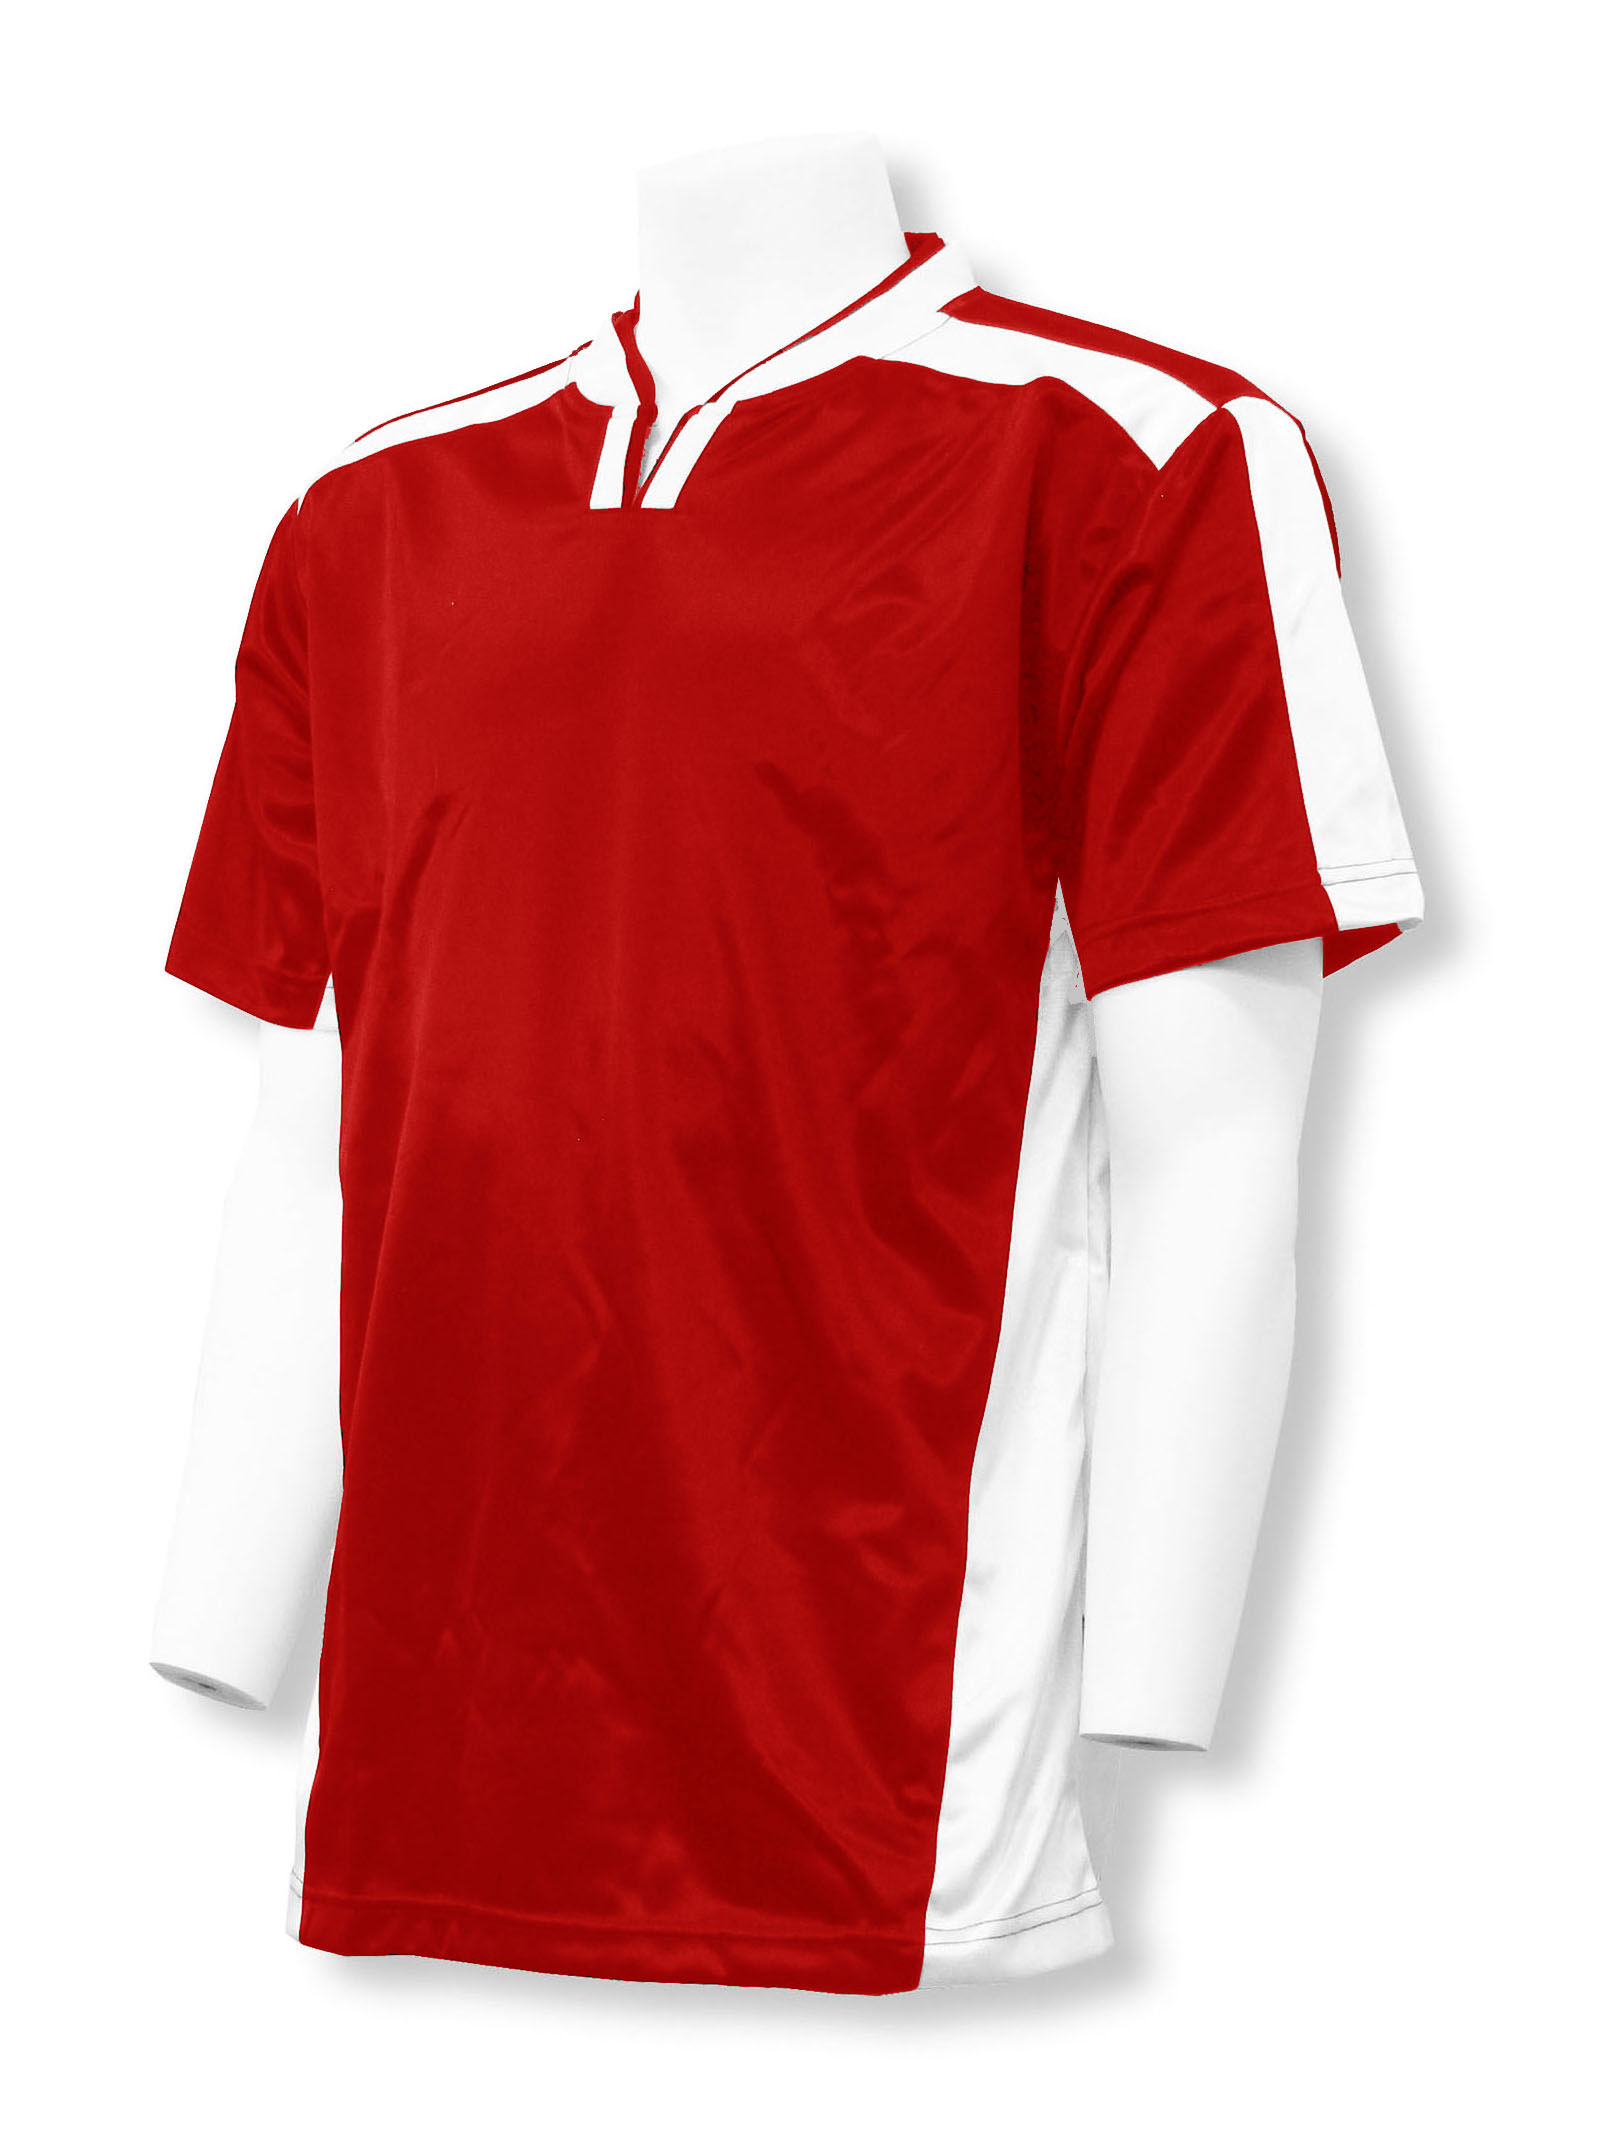 Winchester soccer jersey in red/white by Code Four athletics